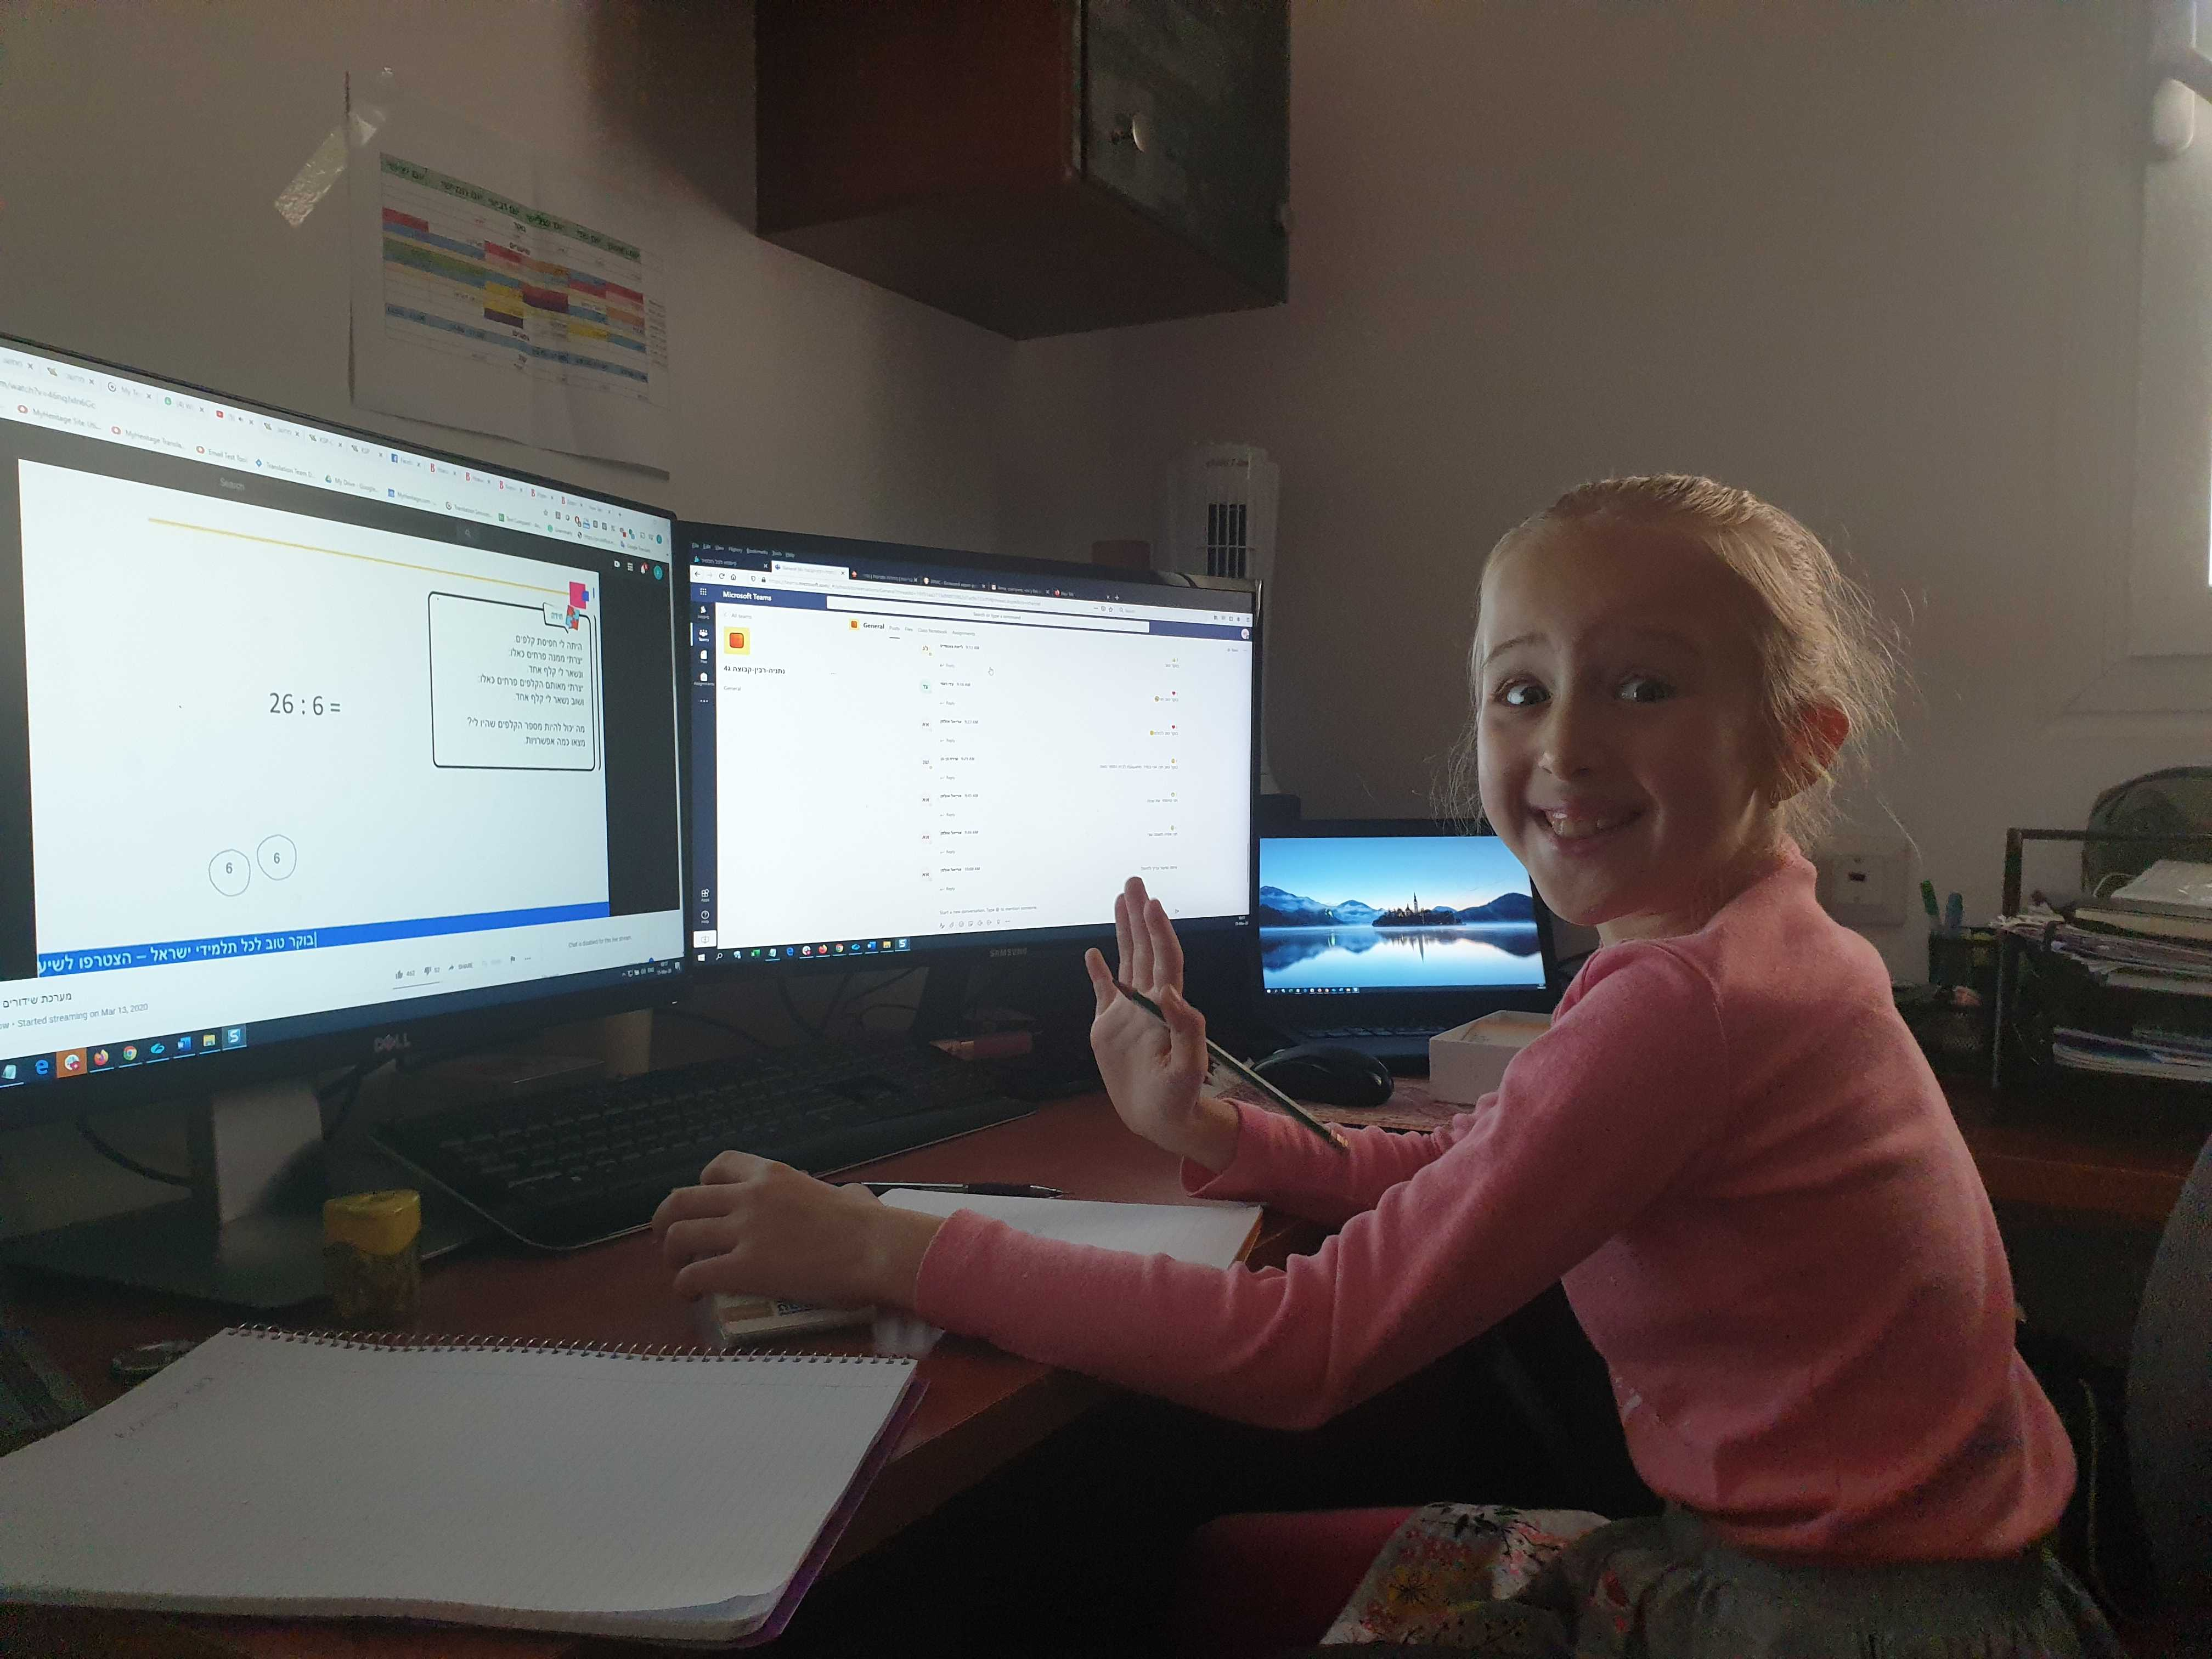 Getting help from the younger generation. Anna Milkman, Head of Translations